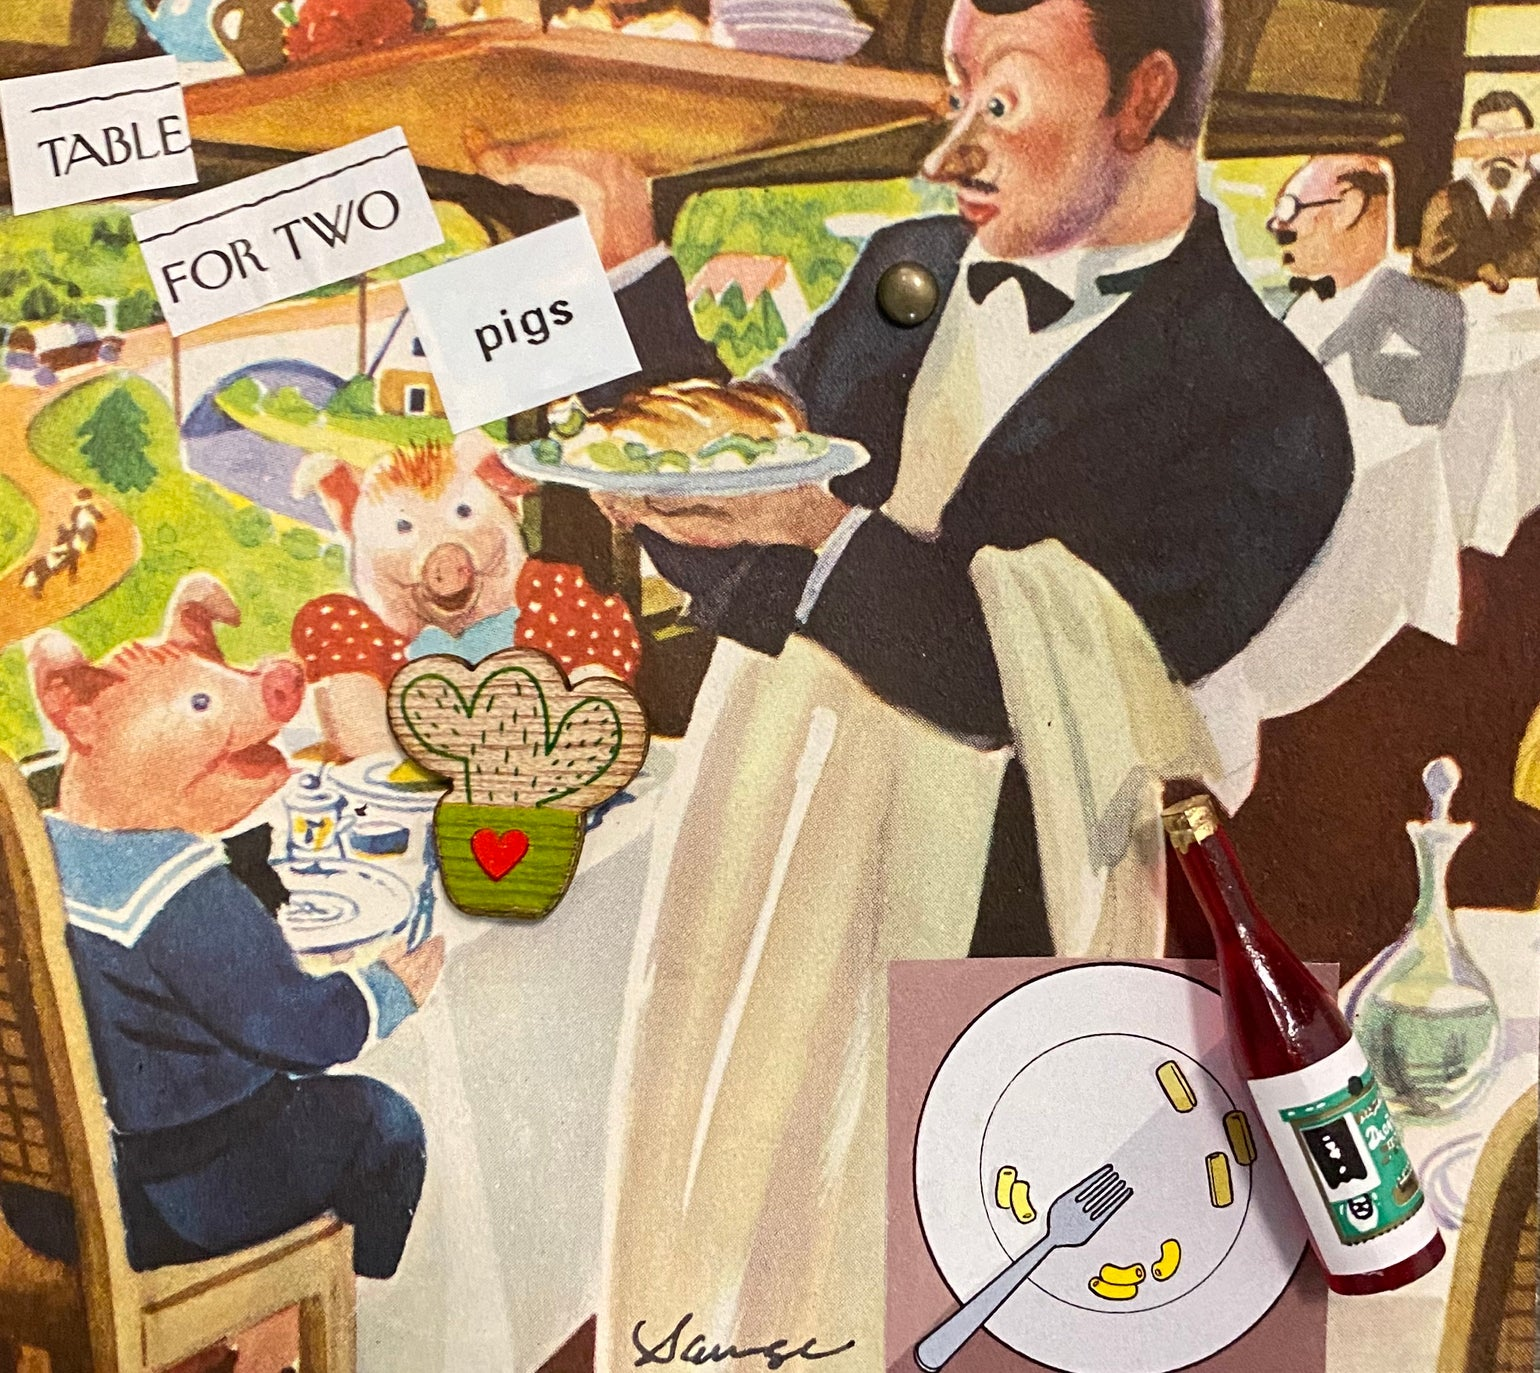 Image of Table for two pigs